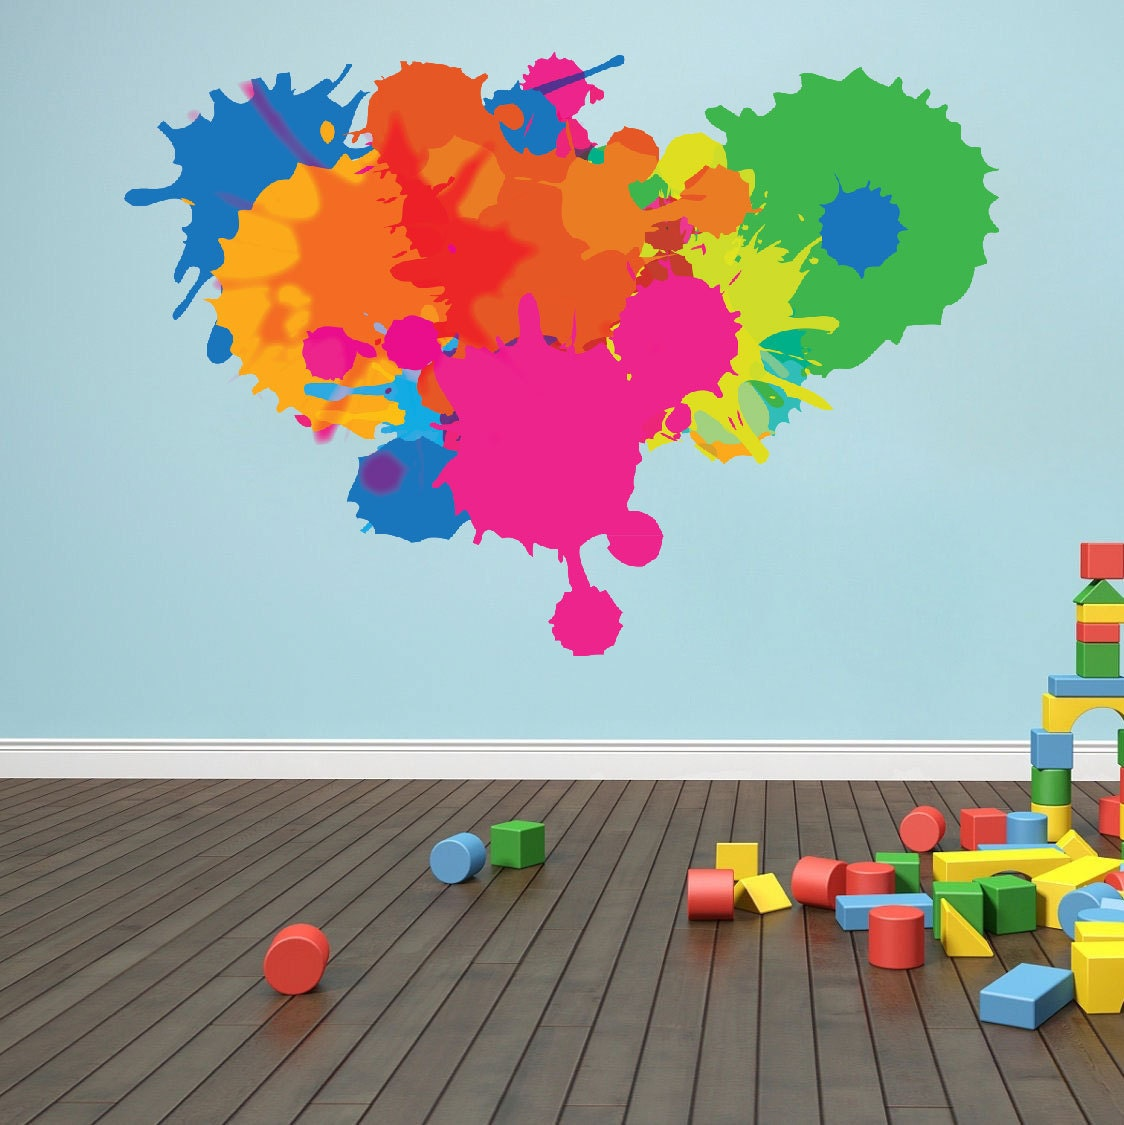 Splash Colorful Room Wall: Color Decal Color Splash Wall Decal Paint Splash Decal